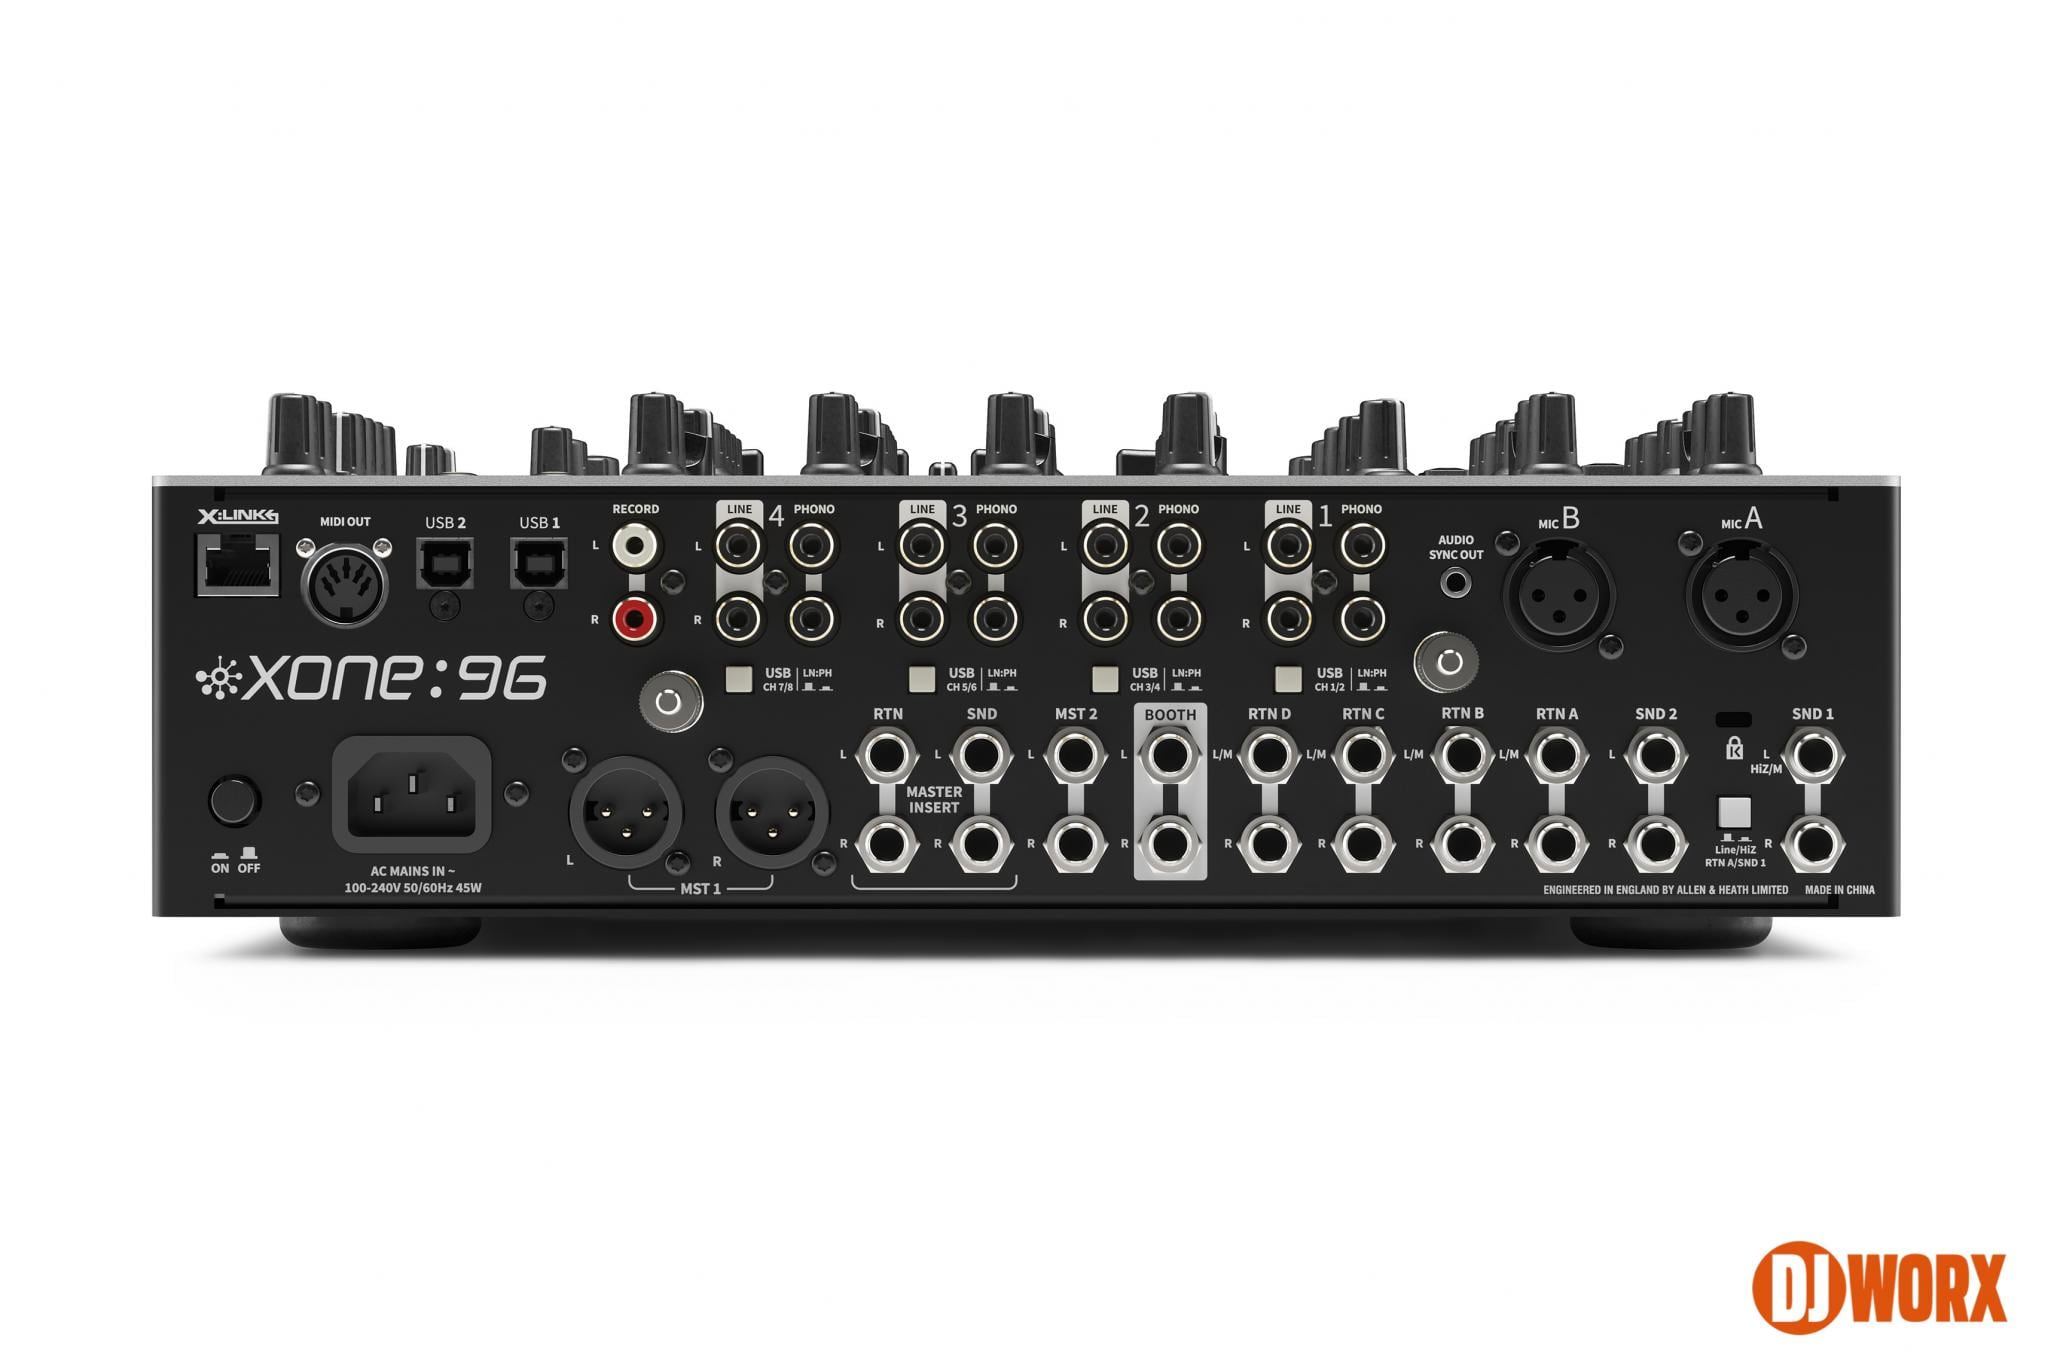 REVEALED: Allen & Heath Xone:96 aka Xone:92 mk2 3